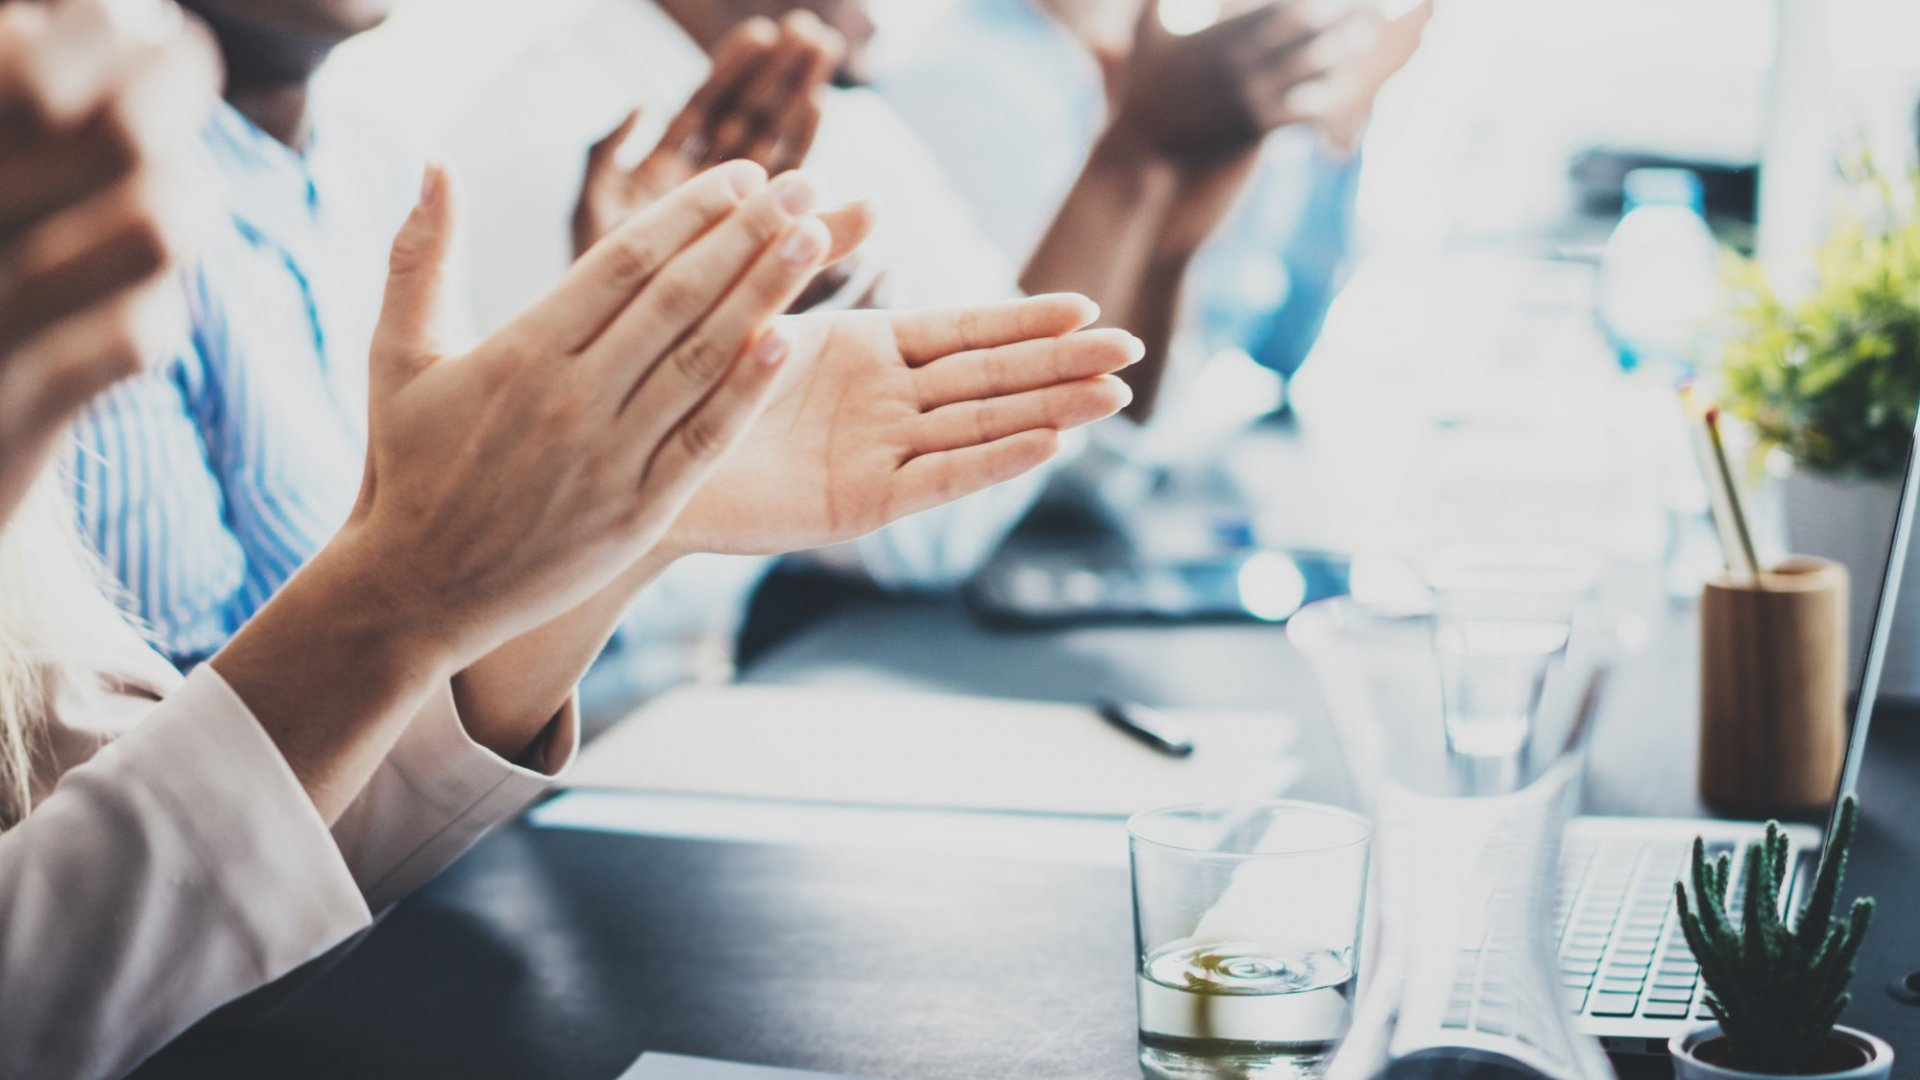 8 Sincere Ways to Show Your Leadership Team Your Appreciation